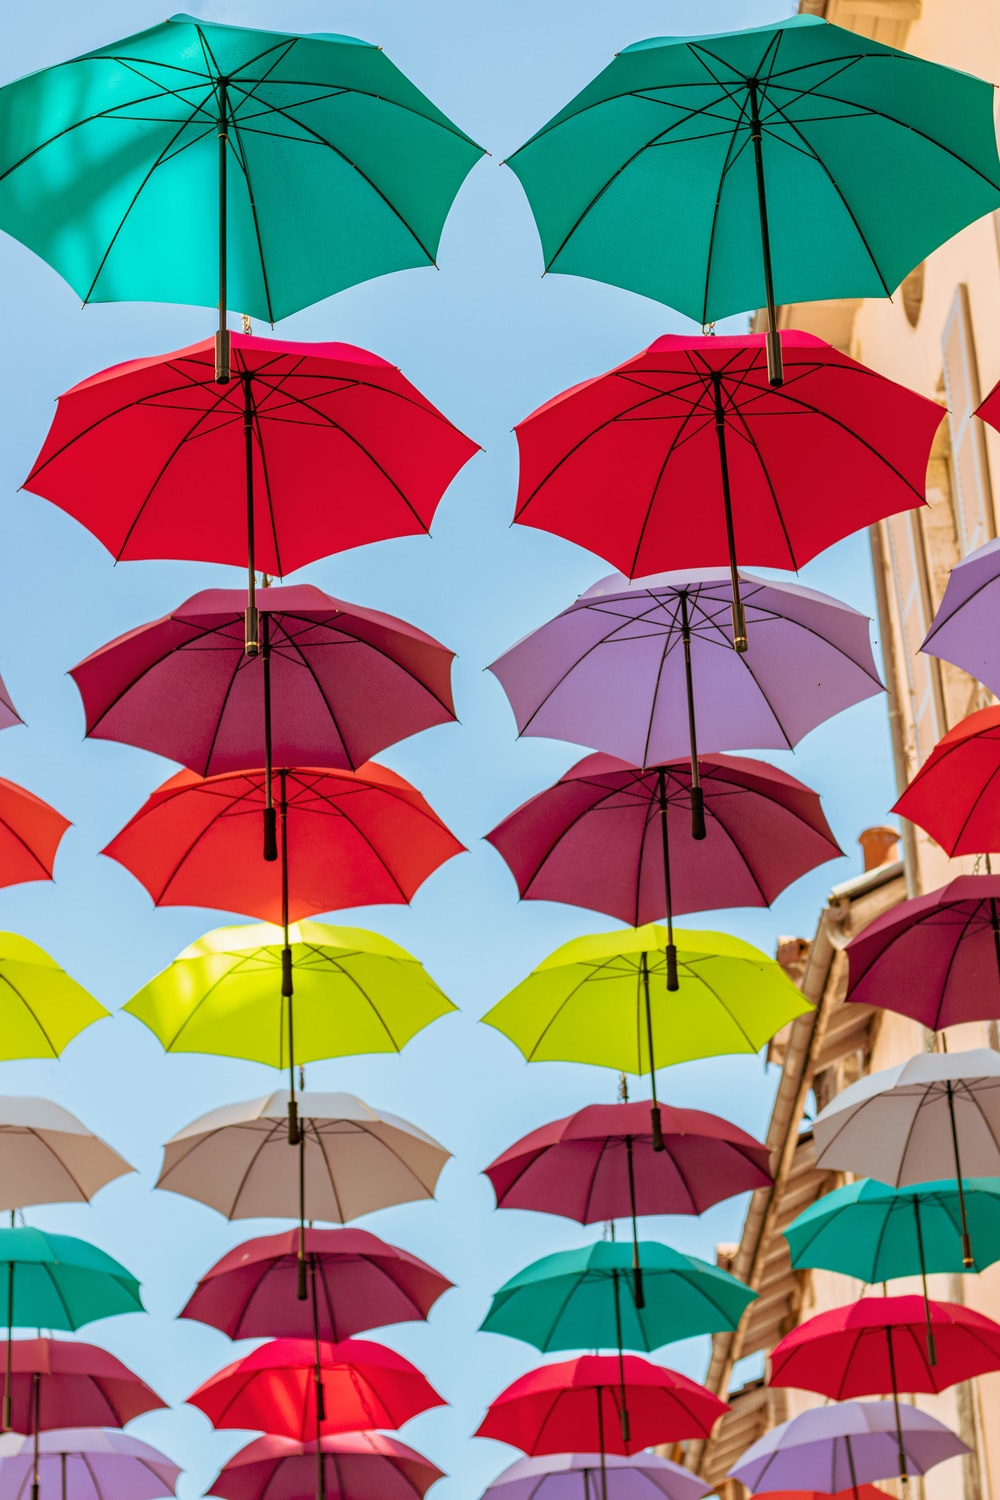 assorted-color umbrellas